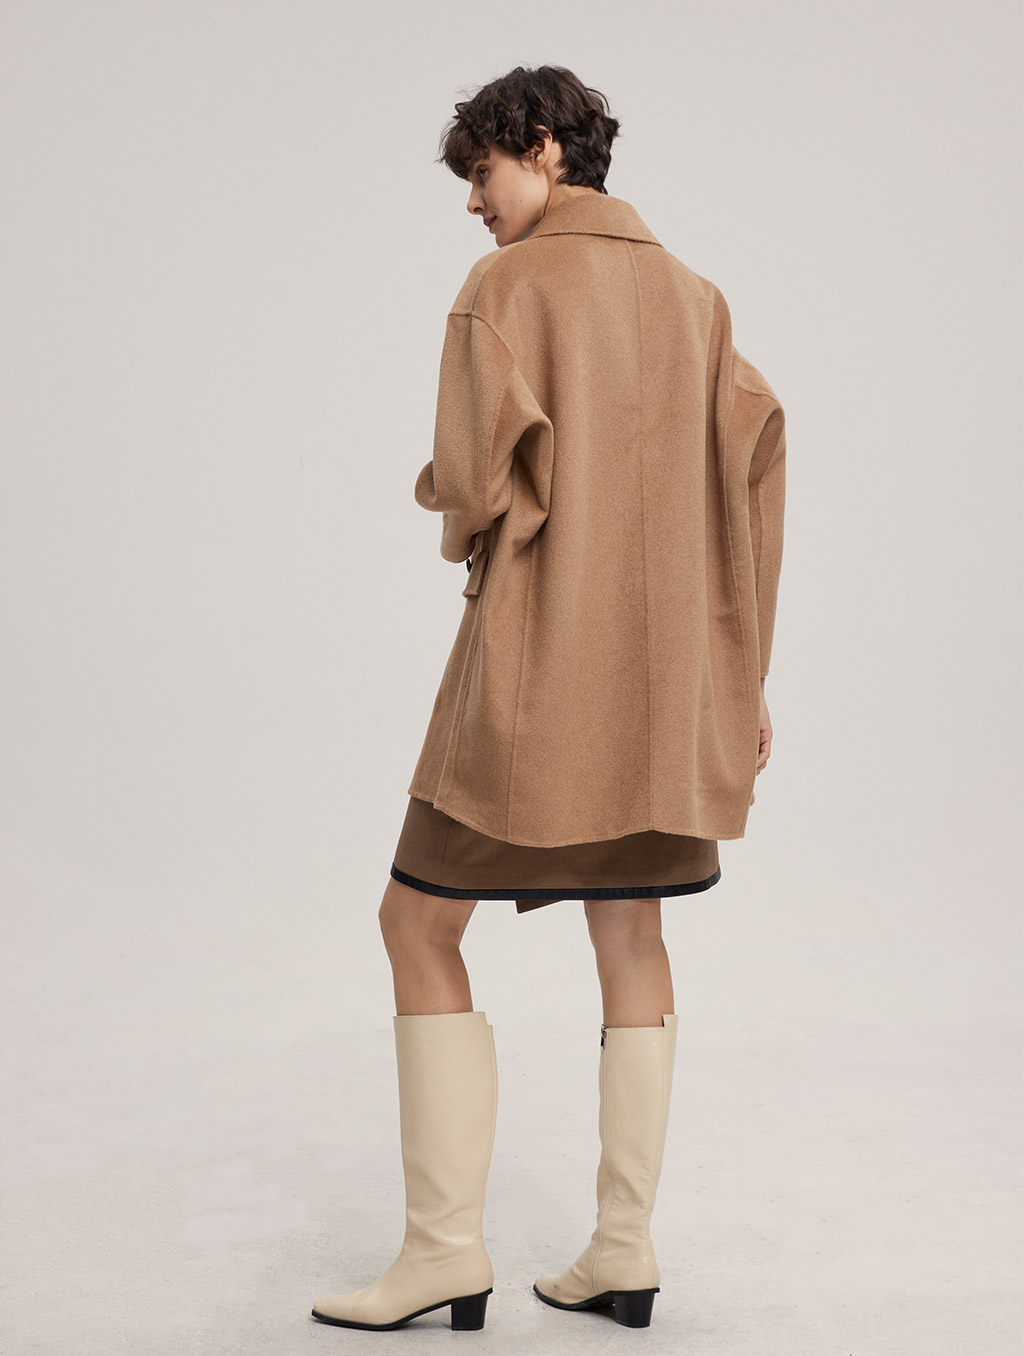 Waisted Double Buttoned 100% Camel Hair Coat-back-camel